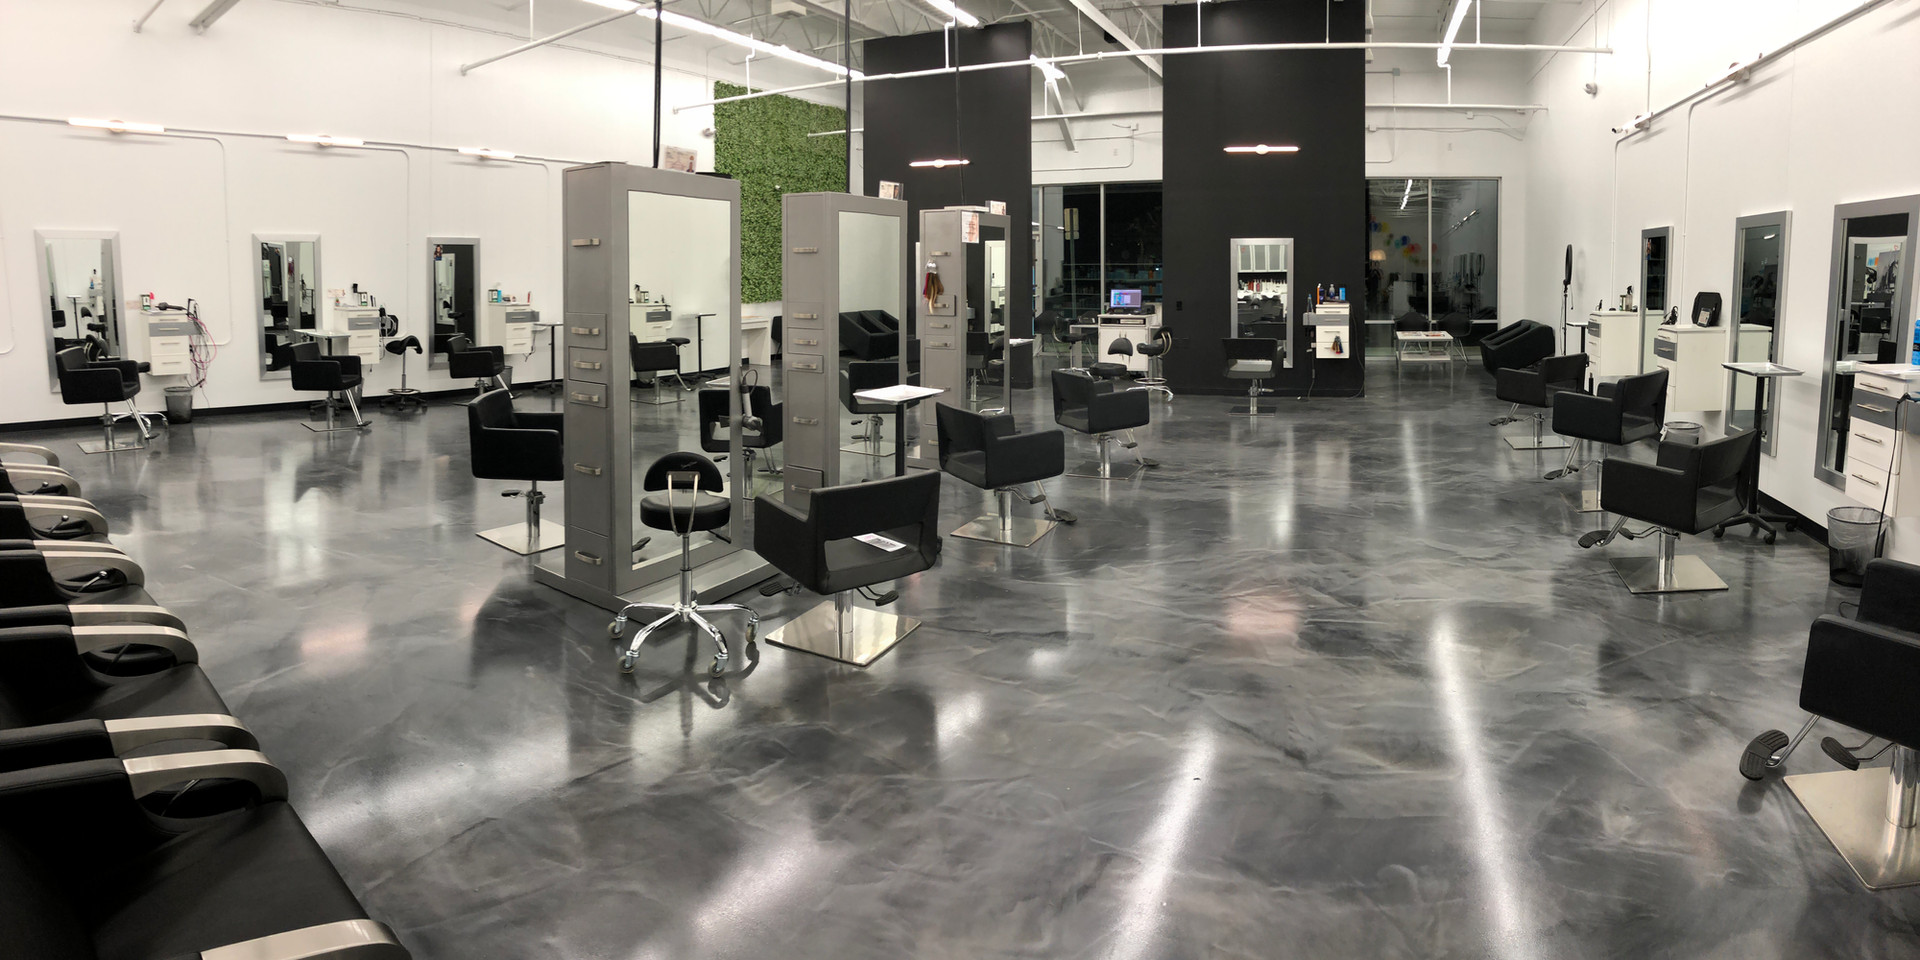 Studio 200 Salon Ocala